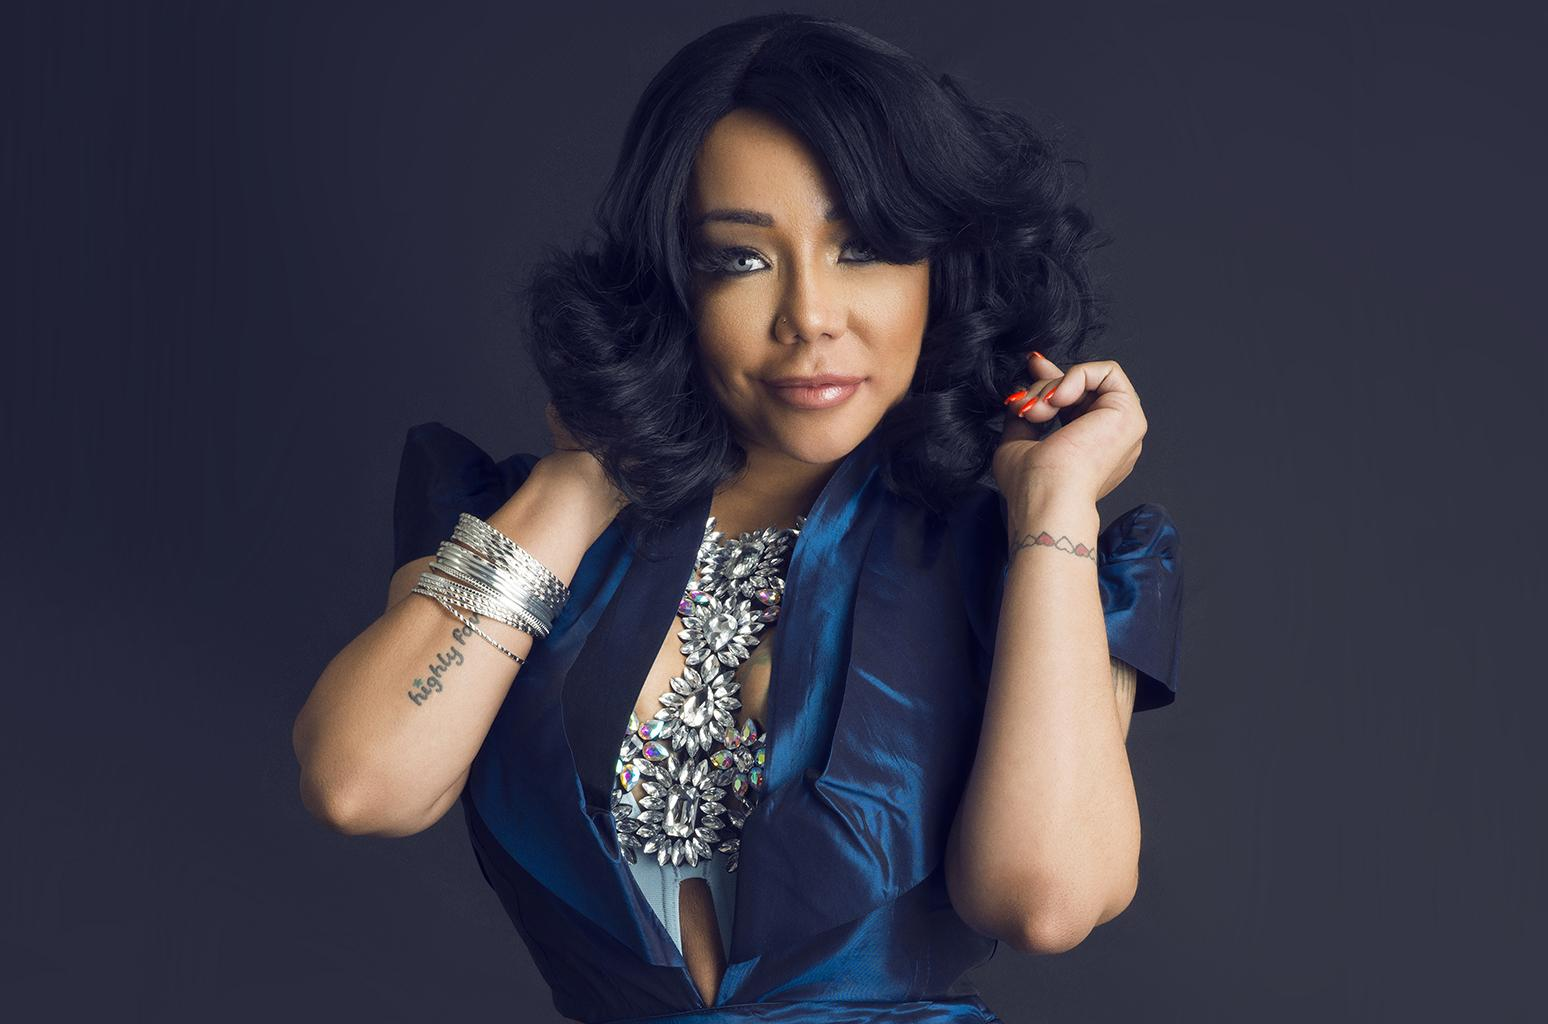 Tiny Harris Refused To Be On RHOA After Getting An Offer - Here's Why!